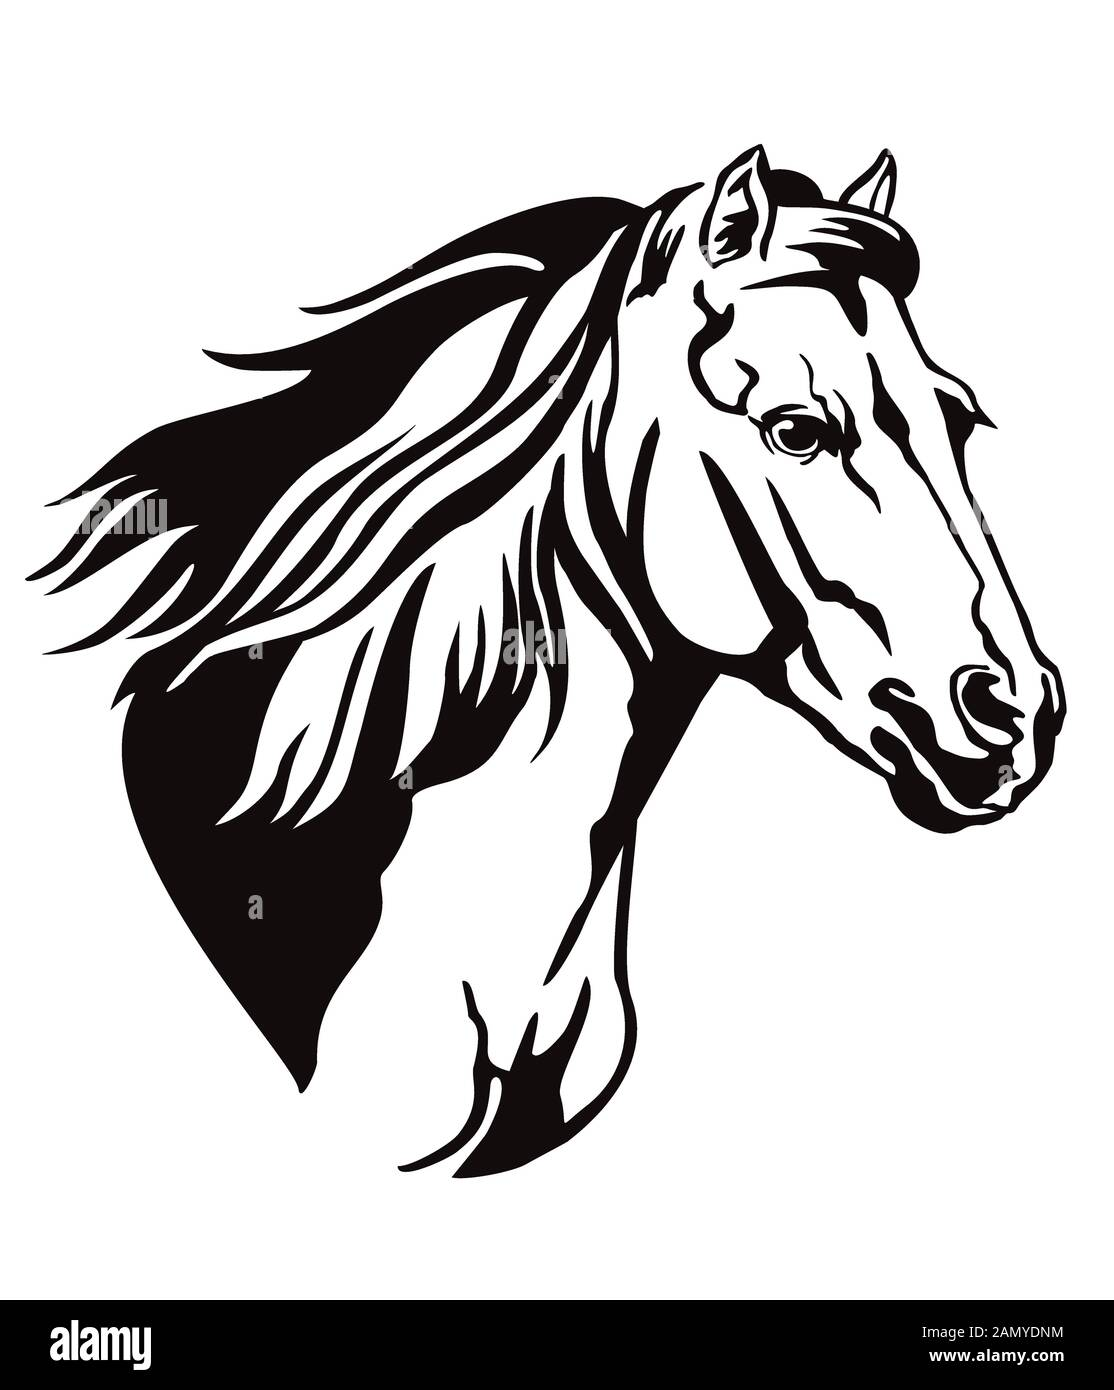 Decorative Monochrome Contour Portrait Of Running Horse With Long Mane Looking In Profile Vector Illustration In Black Color Isolated On White Backgr Stock Vector Image Art Alamy